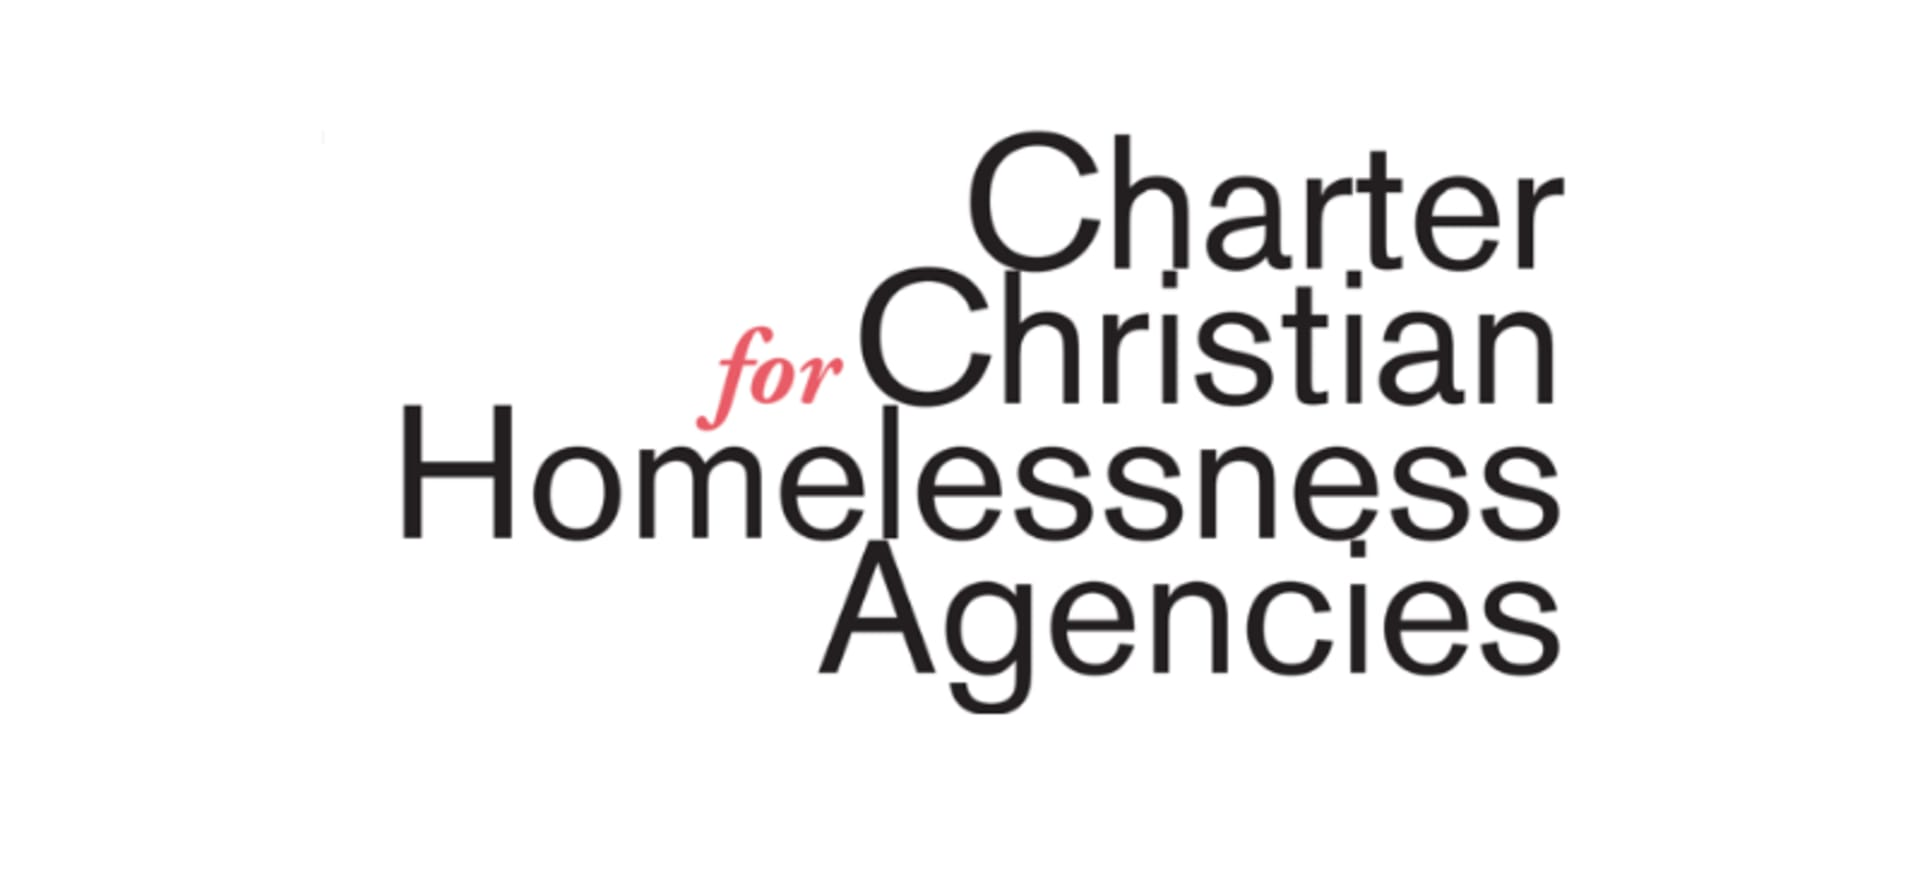 The Charter for Christian Homelessness Agencies